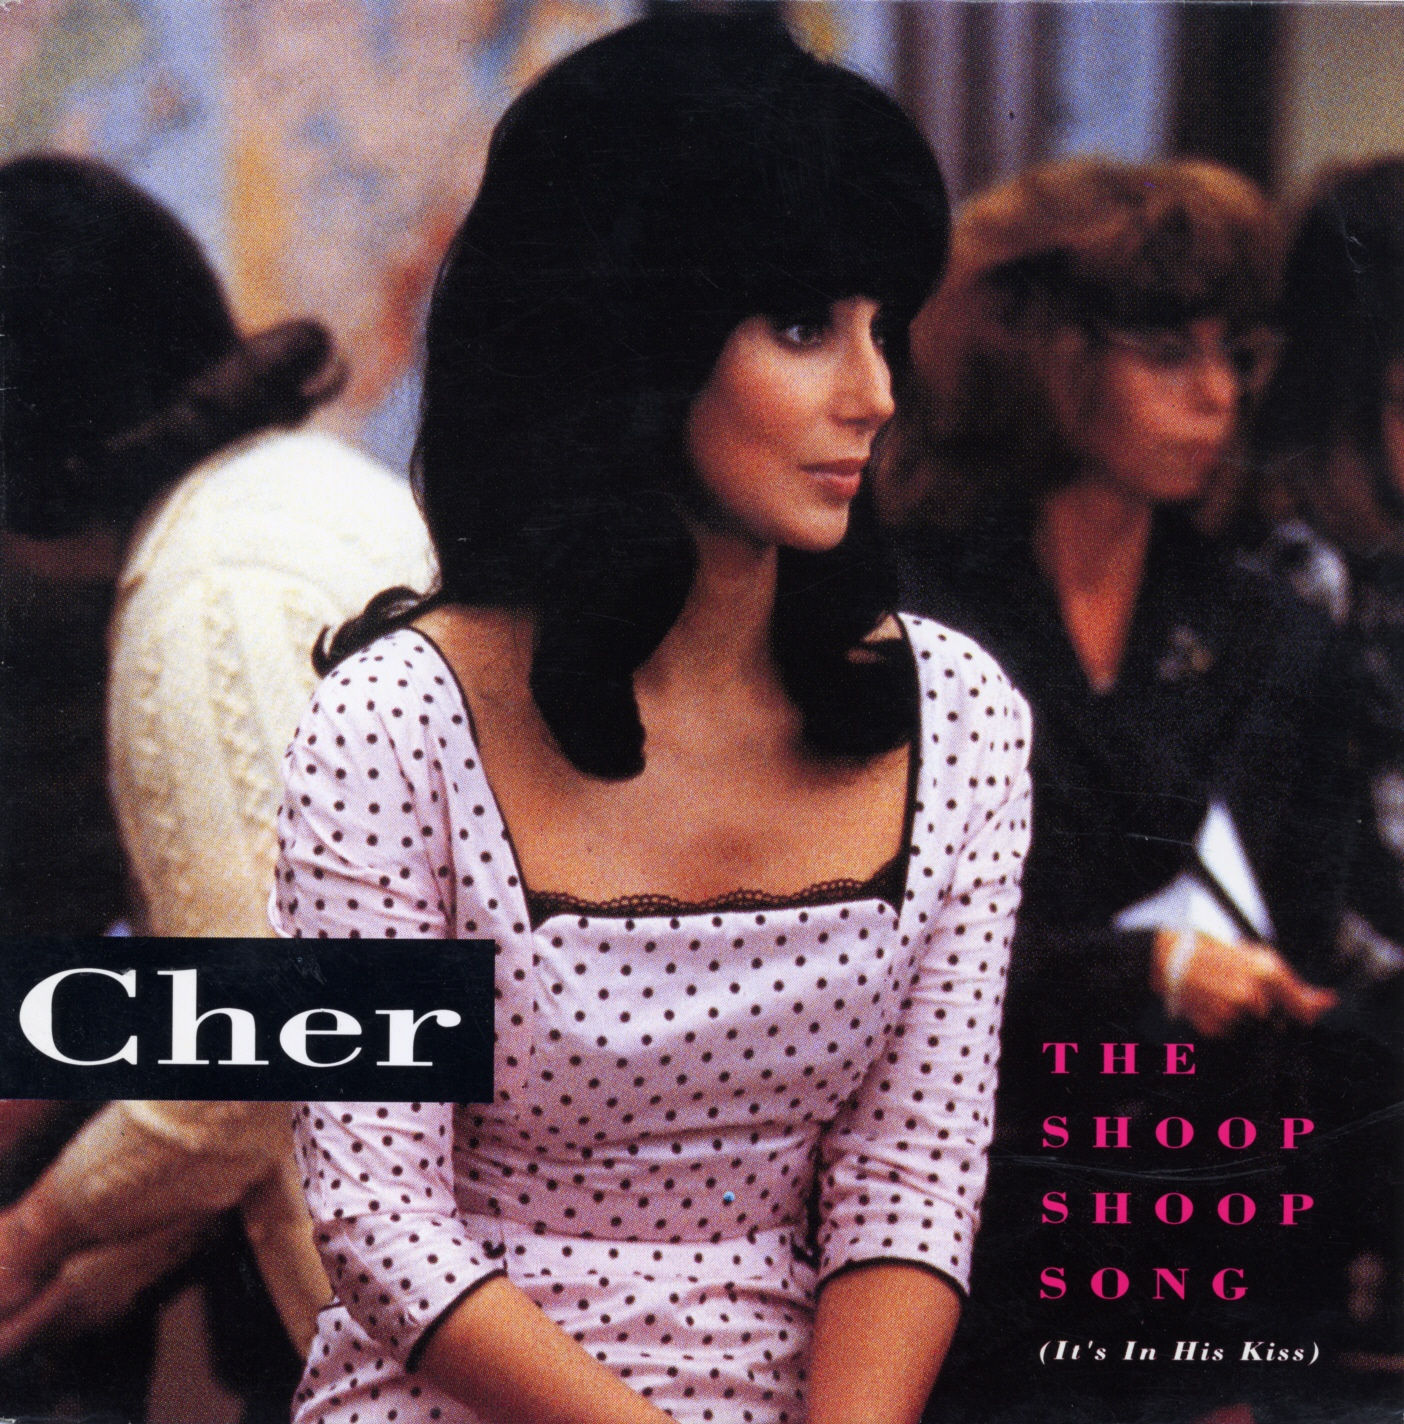 Cover: The shoop shoop song ( It's in his kiss ), Cher